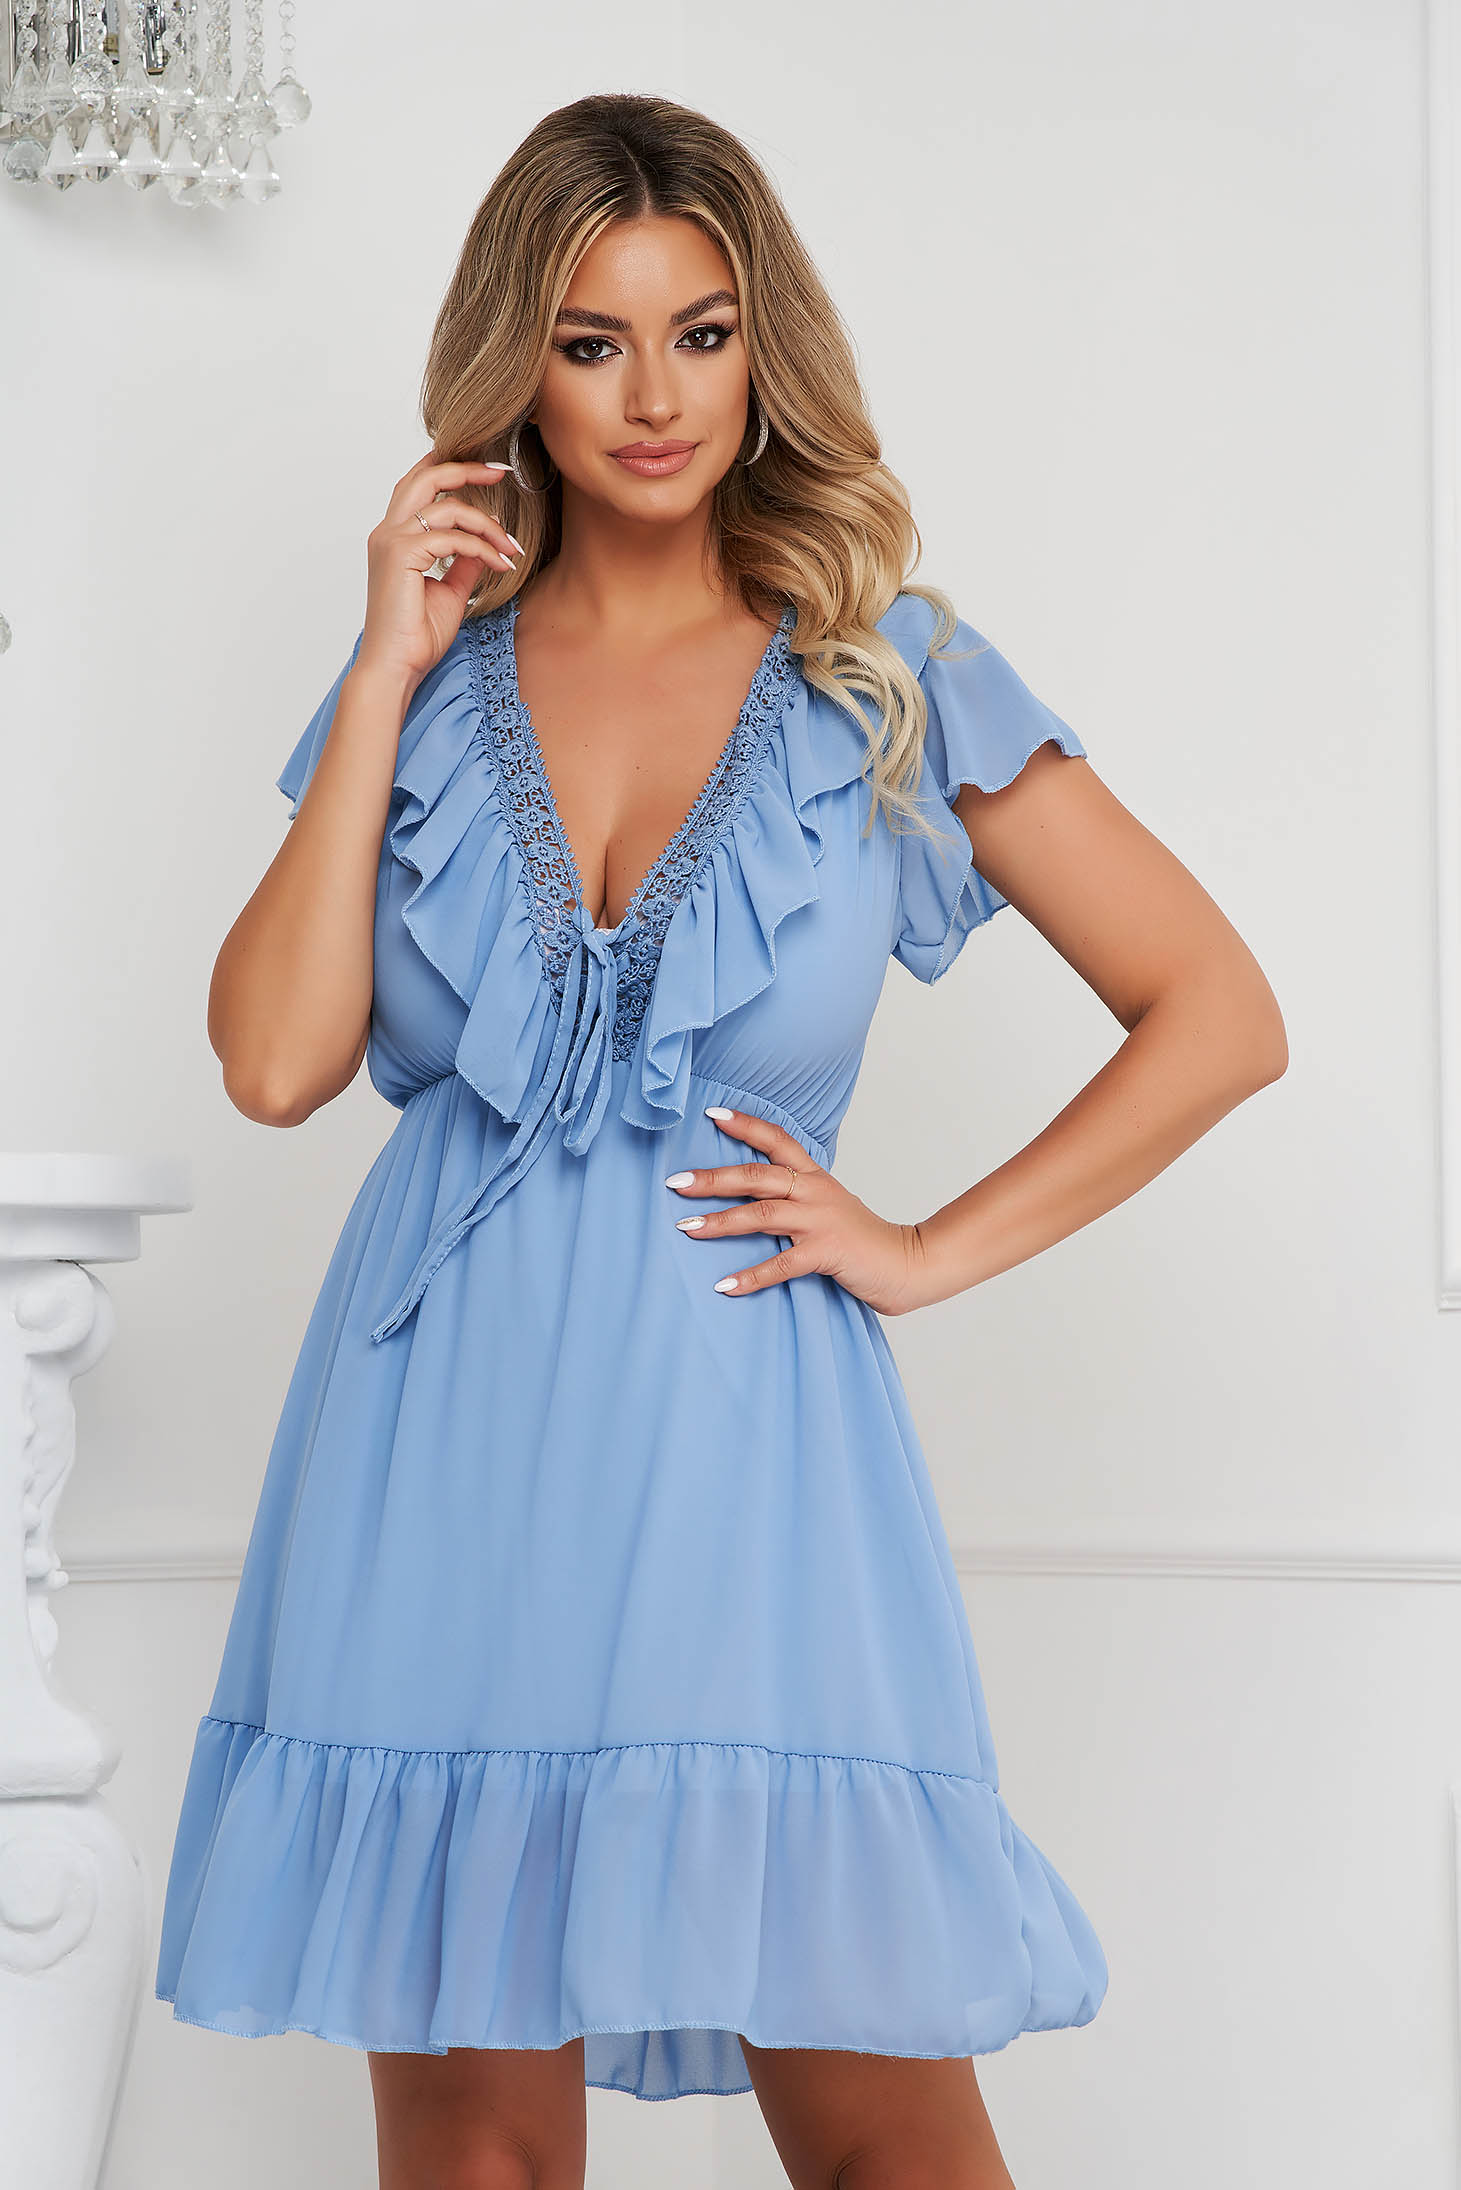 Blue dress cloche with elastic waist from veil fabric short cut with embroidery details with ruffle details